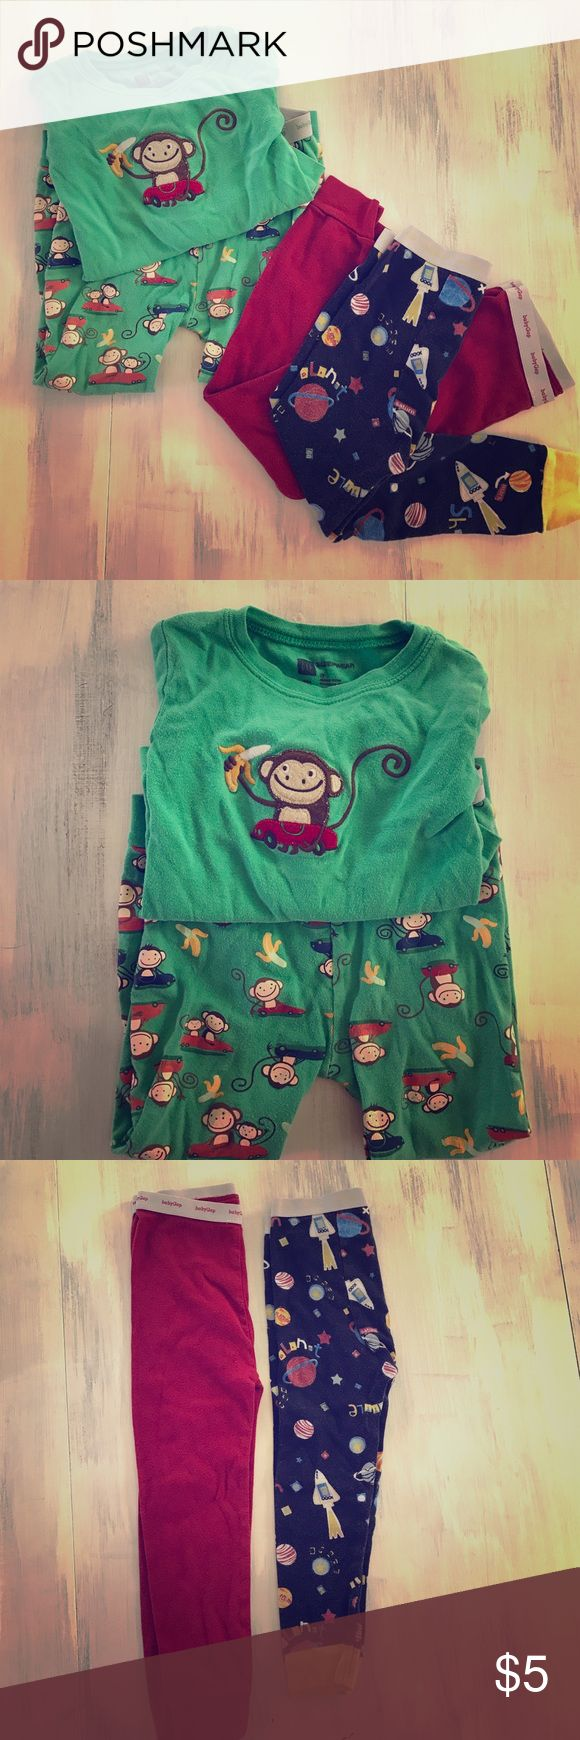 Cute little boy Gap pajamas- lot of 3 From Baby Gap all on a 3T, green monkey shirt and pants set, red, pants, and navy space pants.  Perfect for your little guy! Baby Gap Pajamas Pajama Sets